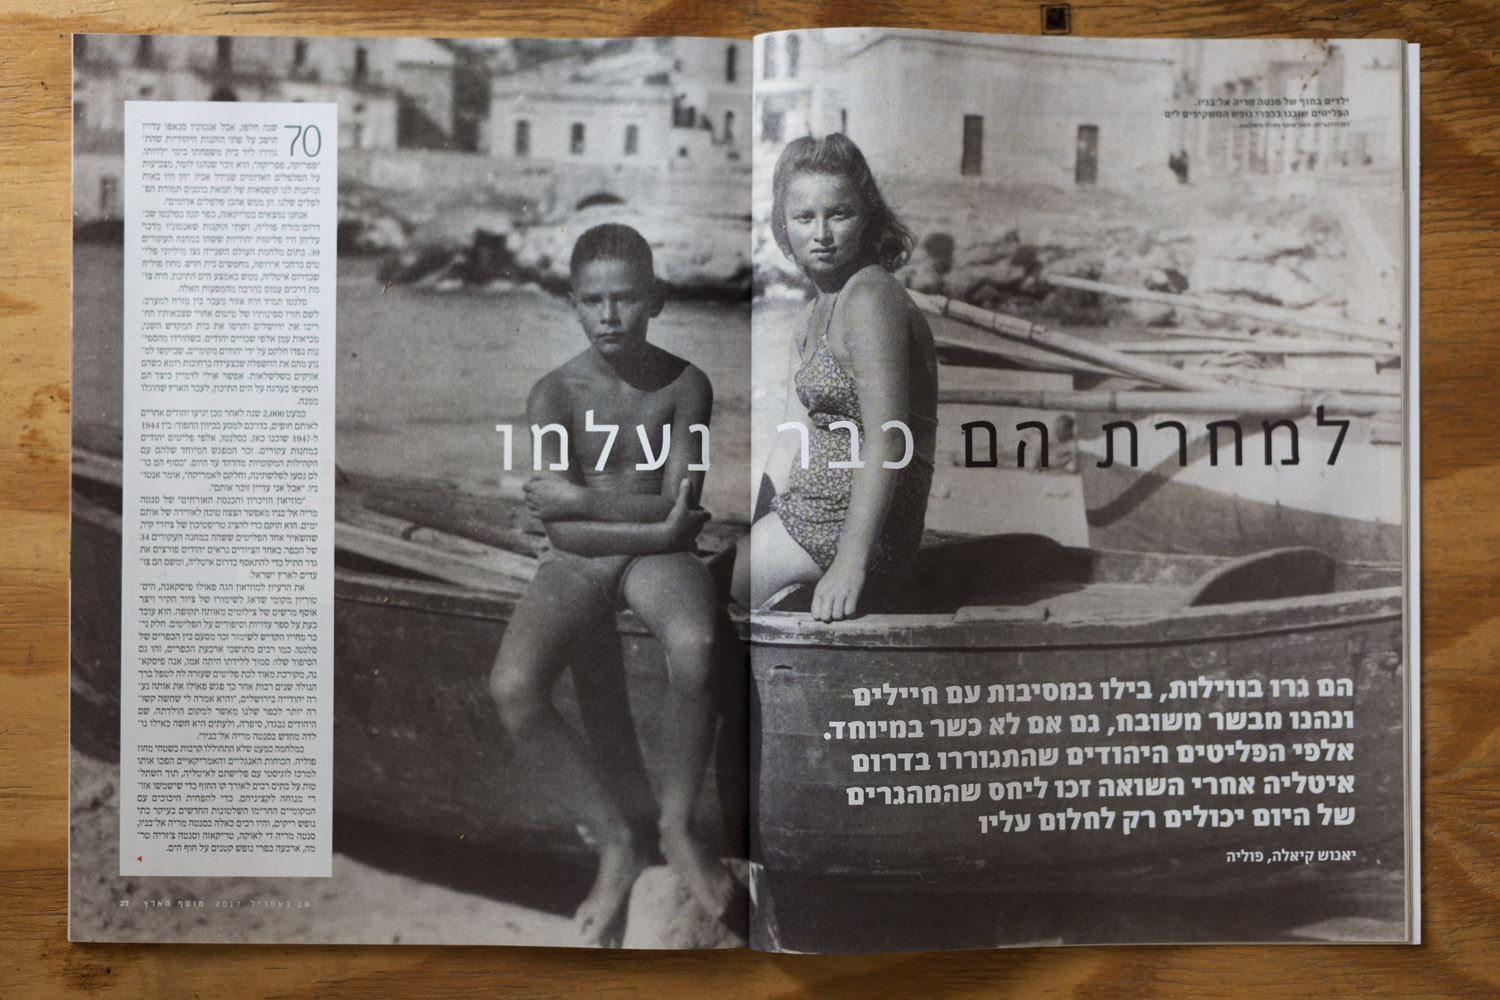 Ha'aretz weekend magazine: Jewish refugees in Salento, 1944-1947. (April 2017) link to story